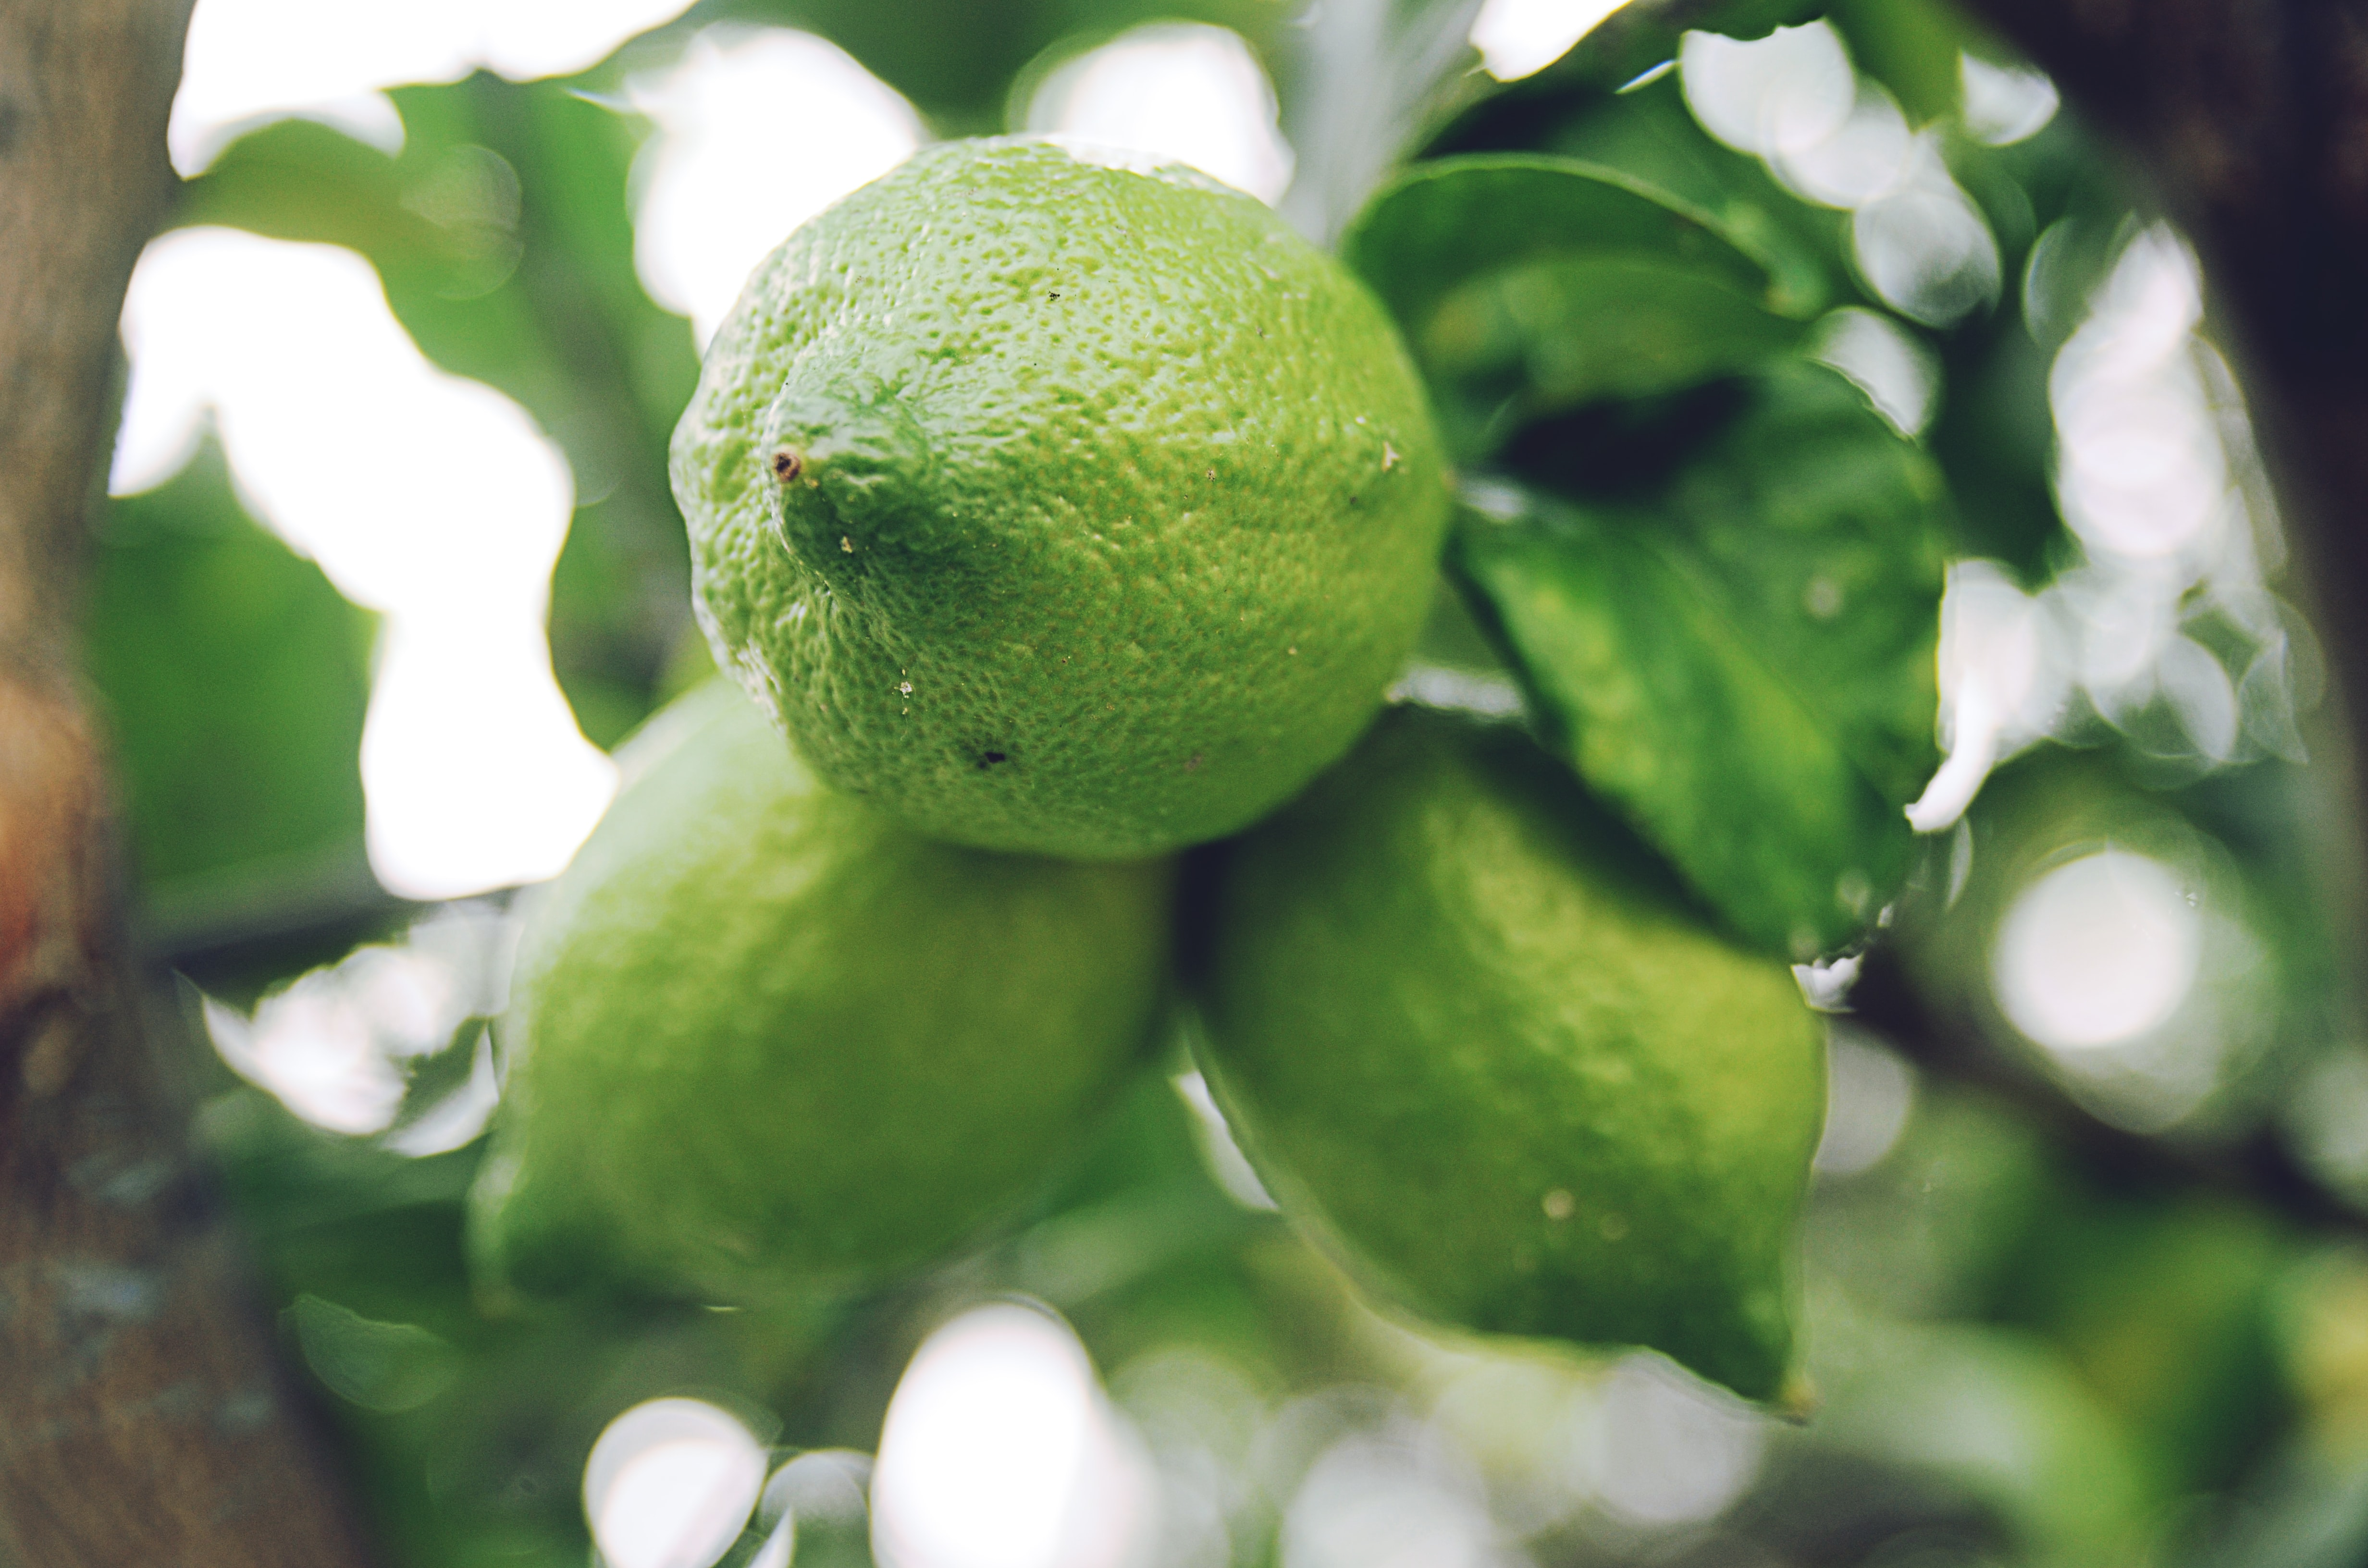 Fresh limes grow in a branch of a citrus tree